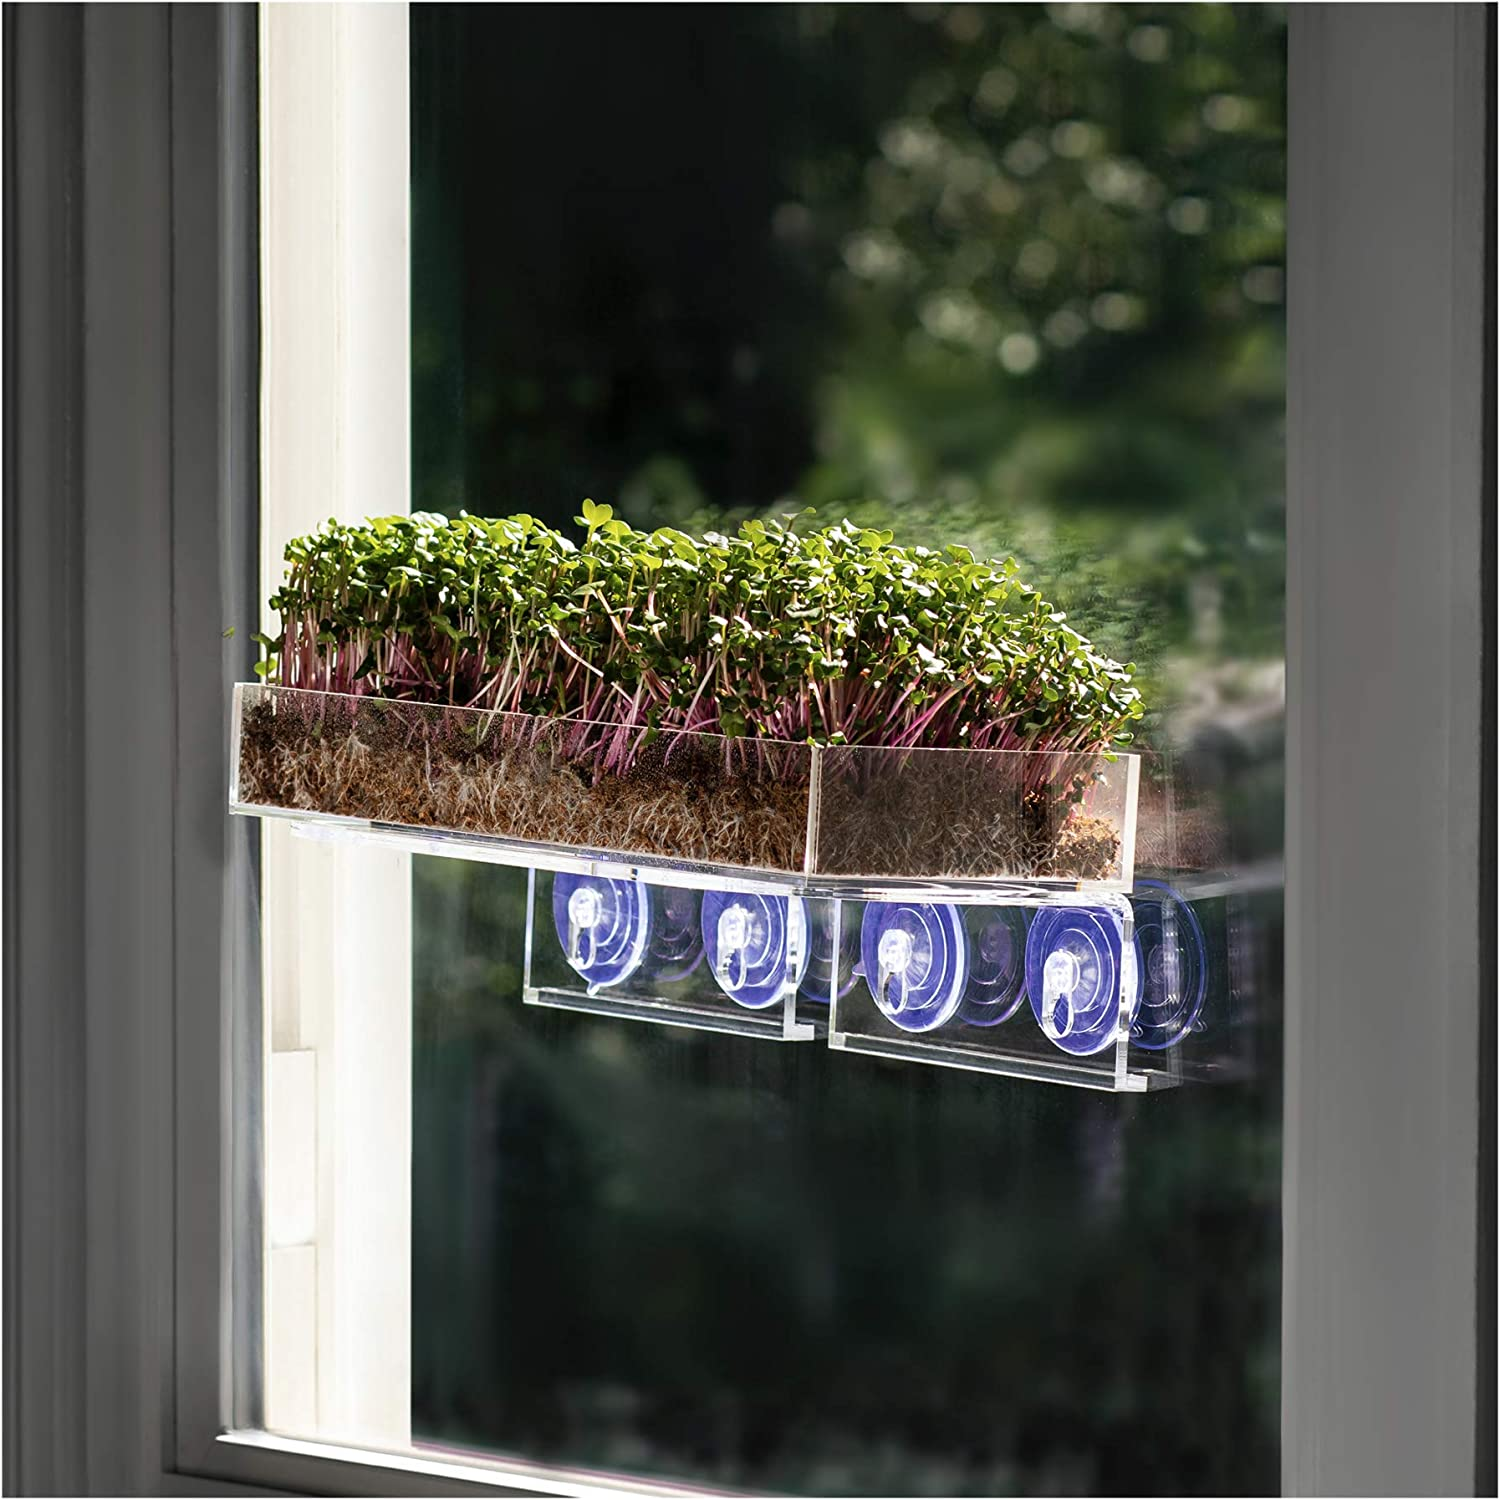 Window Garden Veg Ledge Shelf Microgreens Growing Kit Bundle (5 Crops) – Pre-Measured Soil and Seed. Complete Easy Planting and Growing Indoor Superfood Garden. No Lights, Out of the Way. Looks Great.